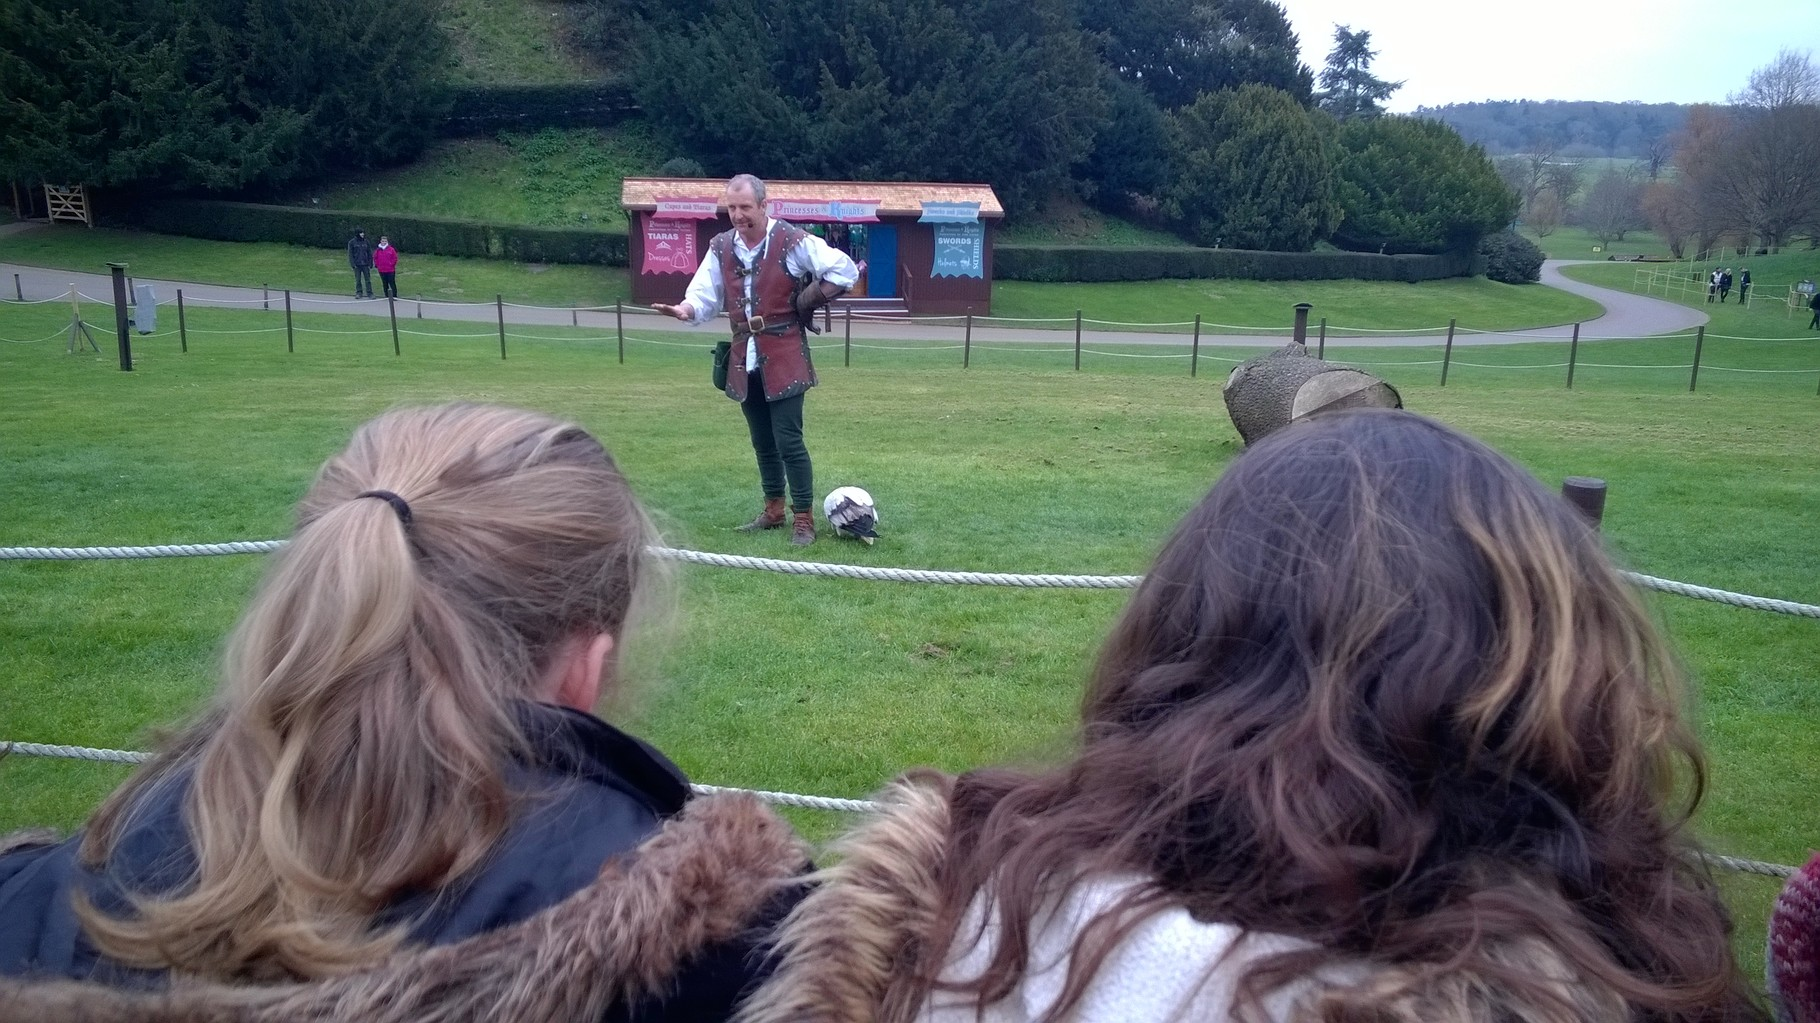 He seemed to think if he pecked at the handler he would get fed and not have to carry on his comedy routine further.